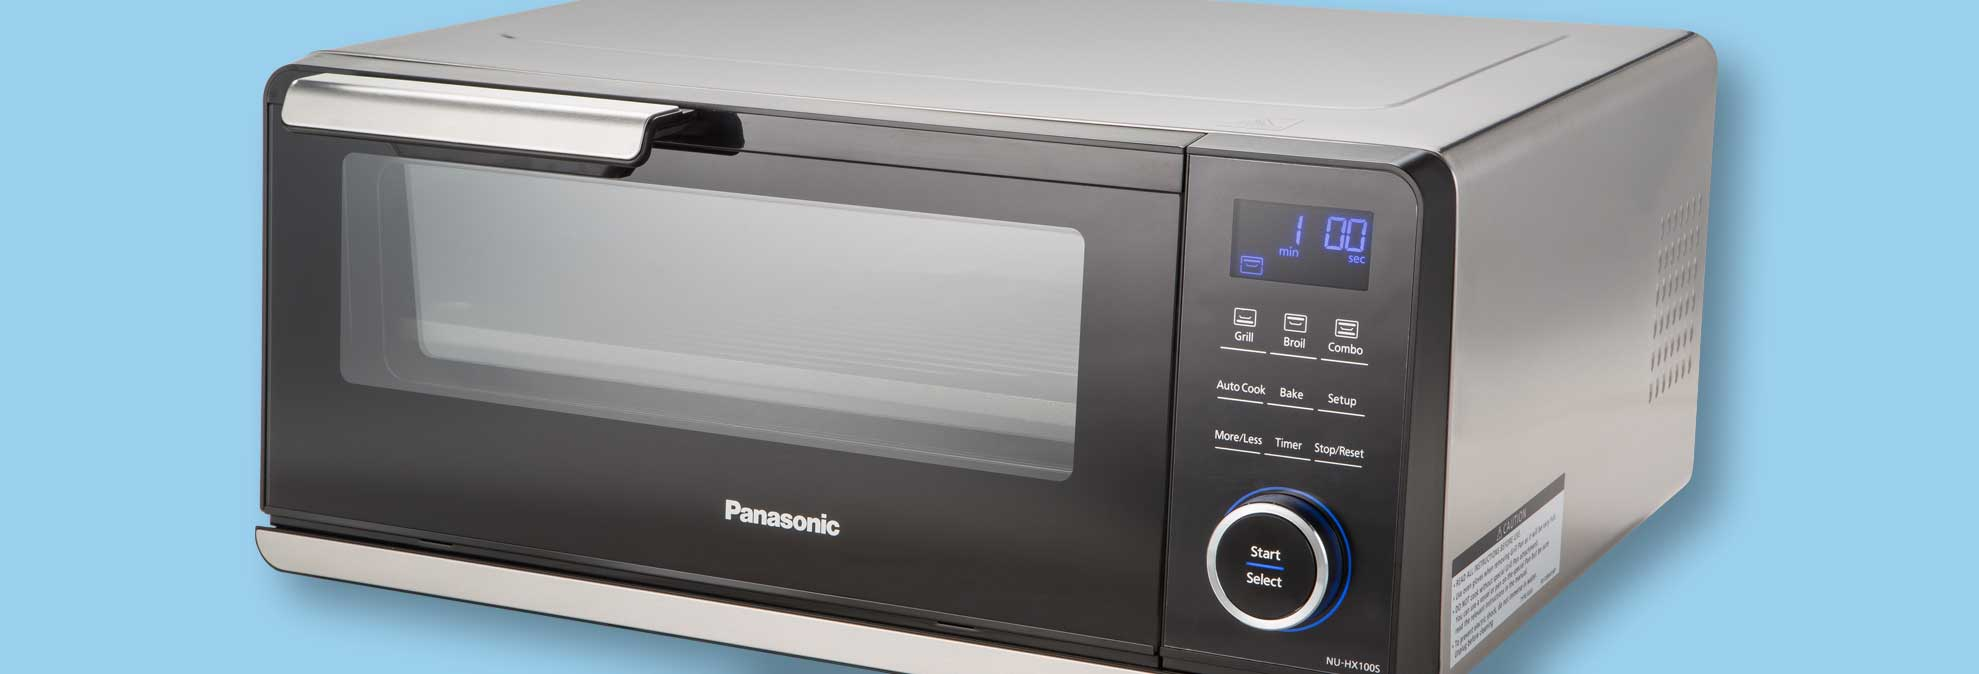 Induction Heating Oven ~ Panasonic countertop induction oven review consumer reports